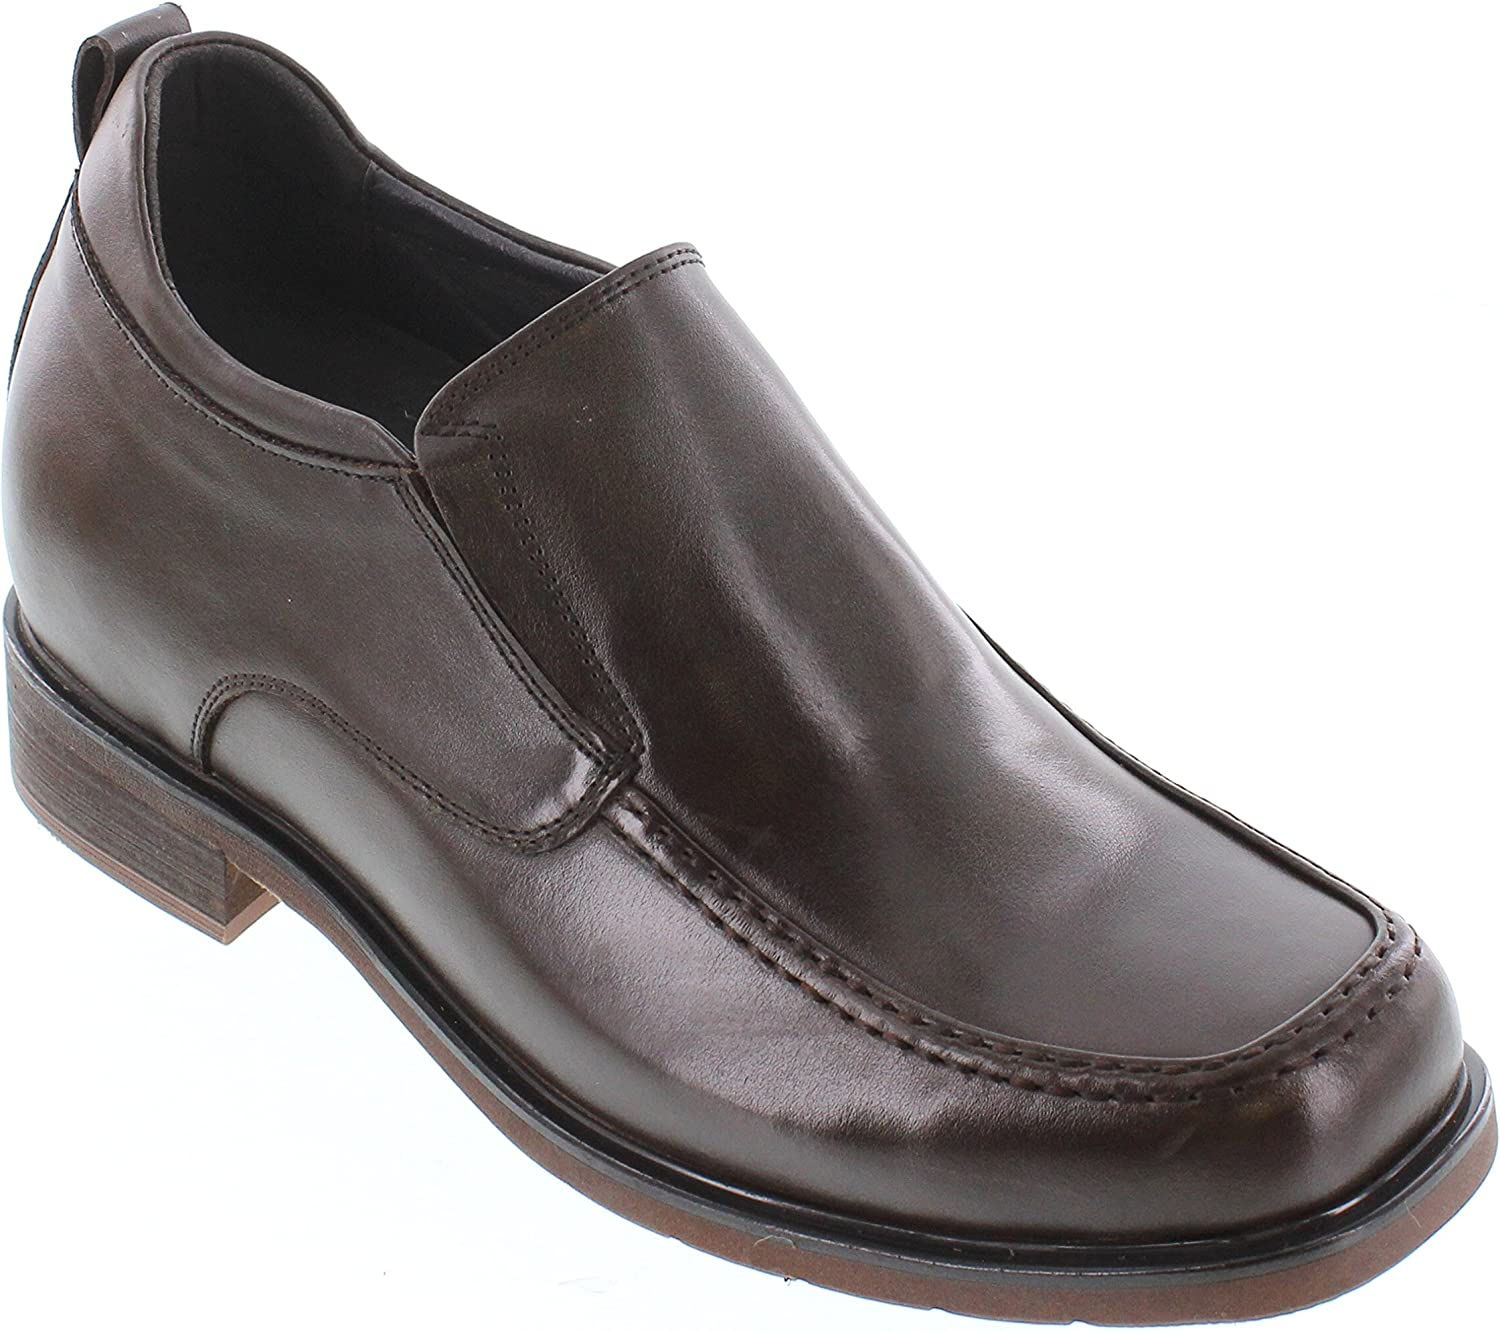 Black Premium Leather Slip-on Formal Loafers 3 Inches Taller CALTO Mens Invisible Height Increasing Elevator Shoes G60128A